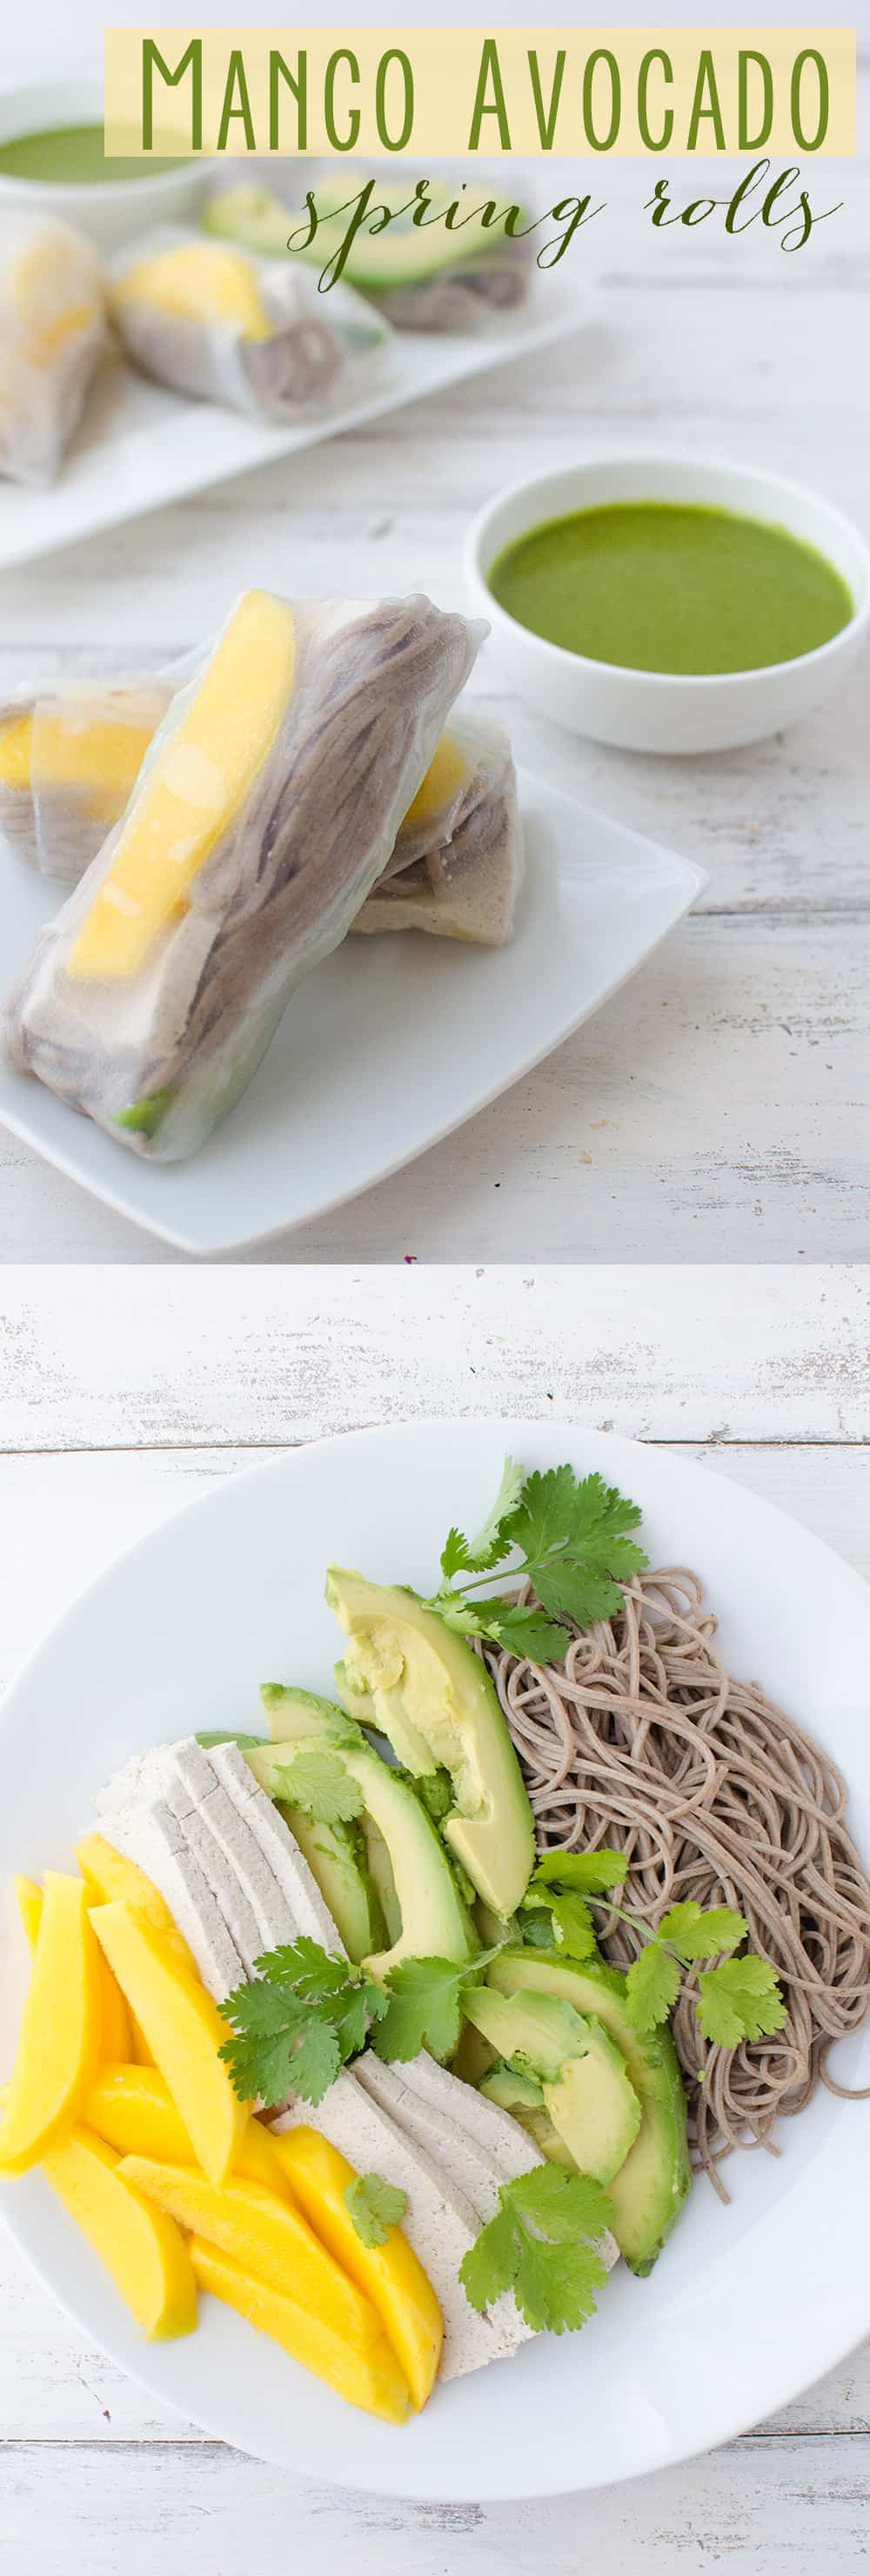 Mango and Avocado Spring Rolls! So easy and packed with nutrition: juicy mango, creamy avocado, buckwheat noodles and tofu. Served with a spicy cilantro dipping sauce. #vegan #vegetarian | www.delishknowledge.com